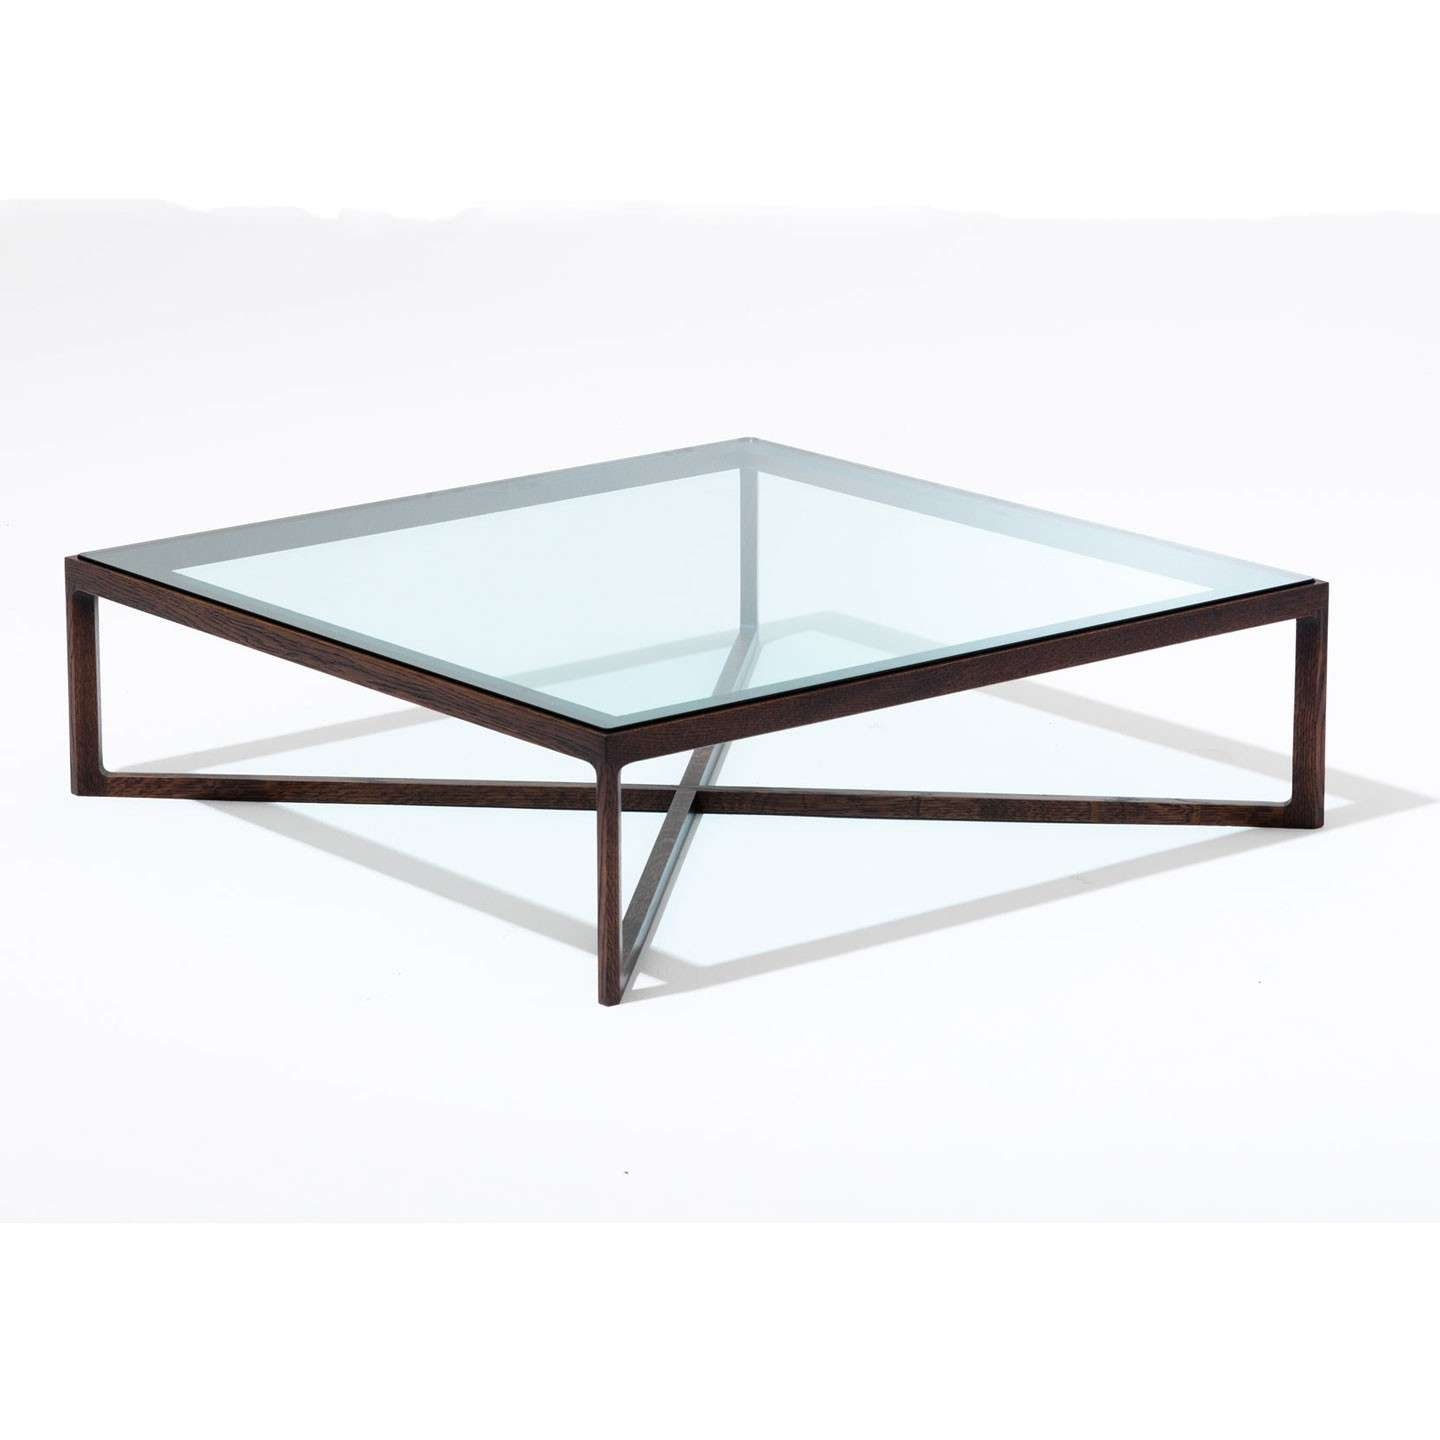 Extra Large Square Glass Coffee Table • Coffee Table Ideas Regarding 2017 Large Square Glass Coffee Tables (Gallery 2 of 20)